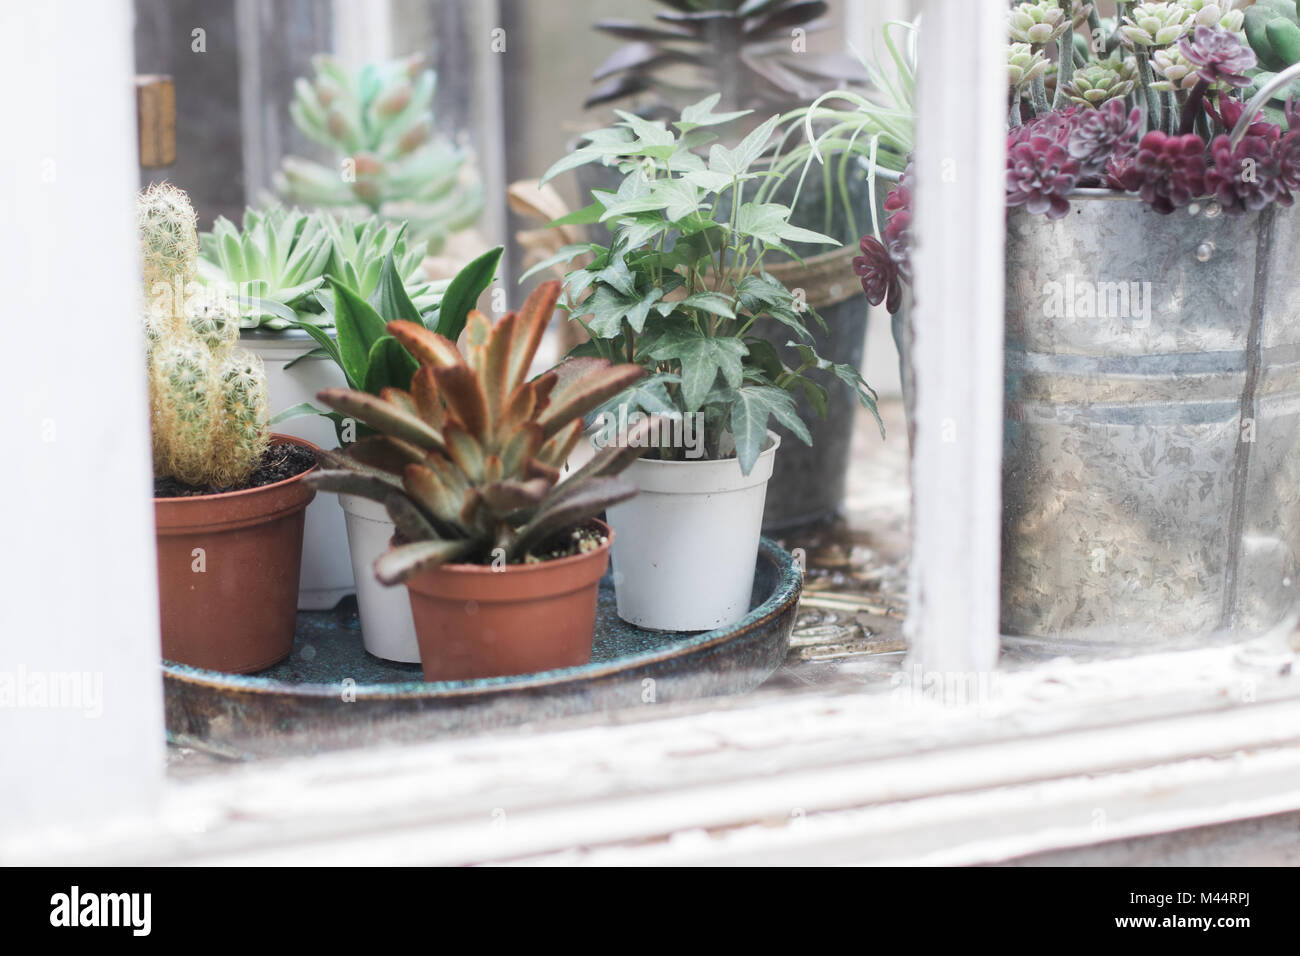 Succulents and tiny plants in natural light Stock Photo